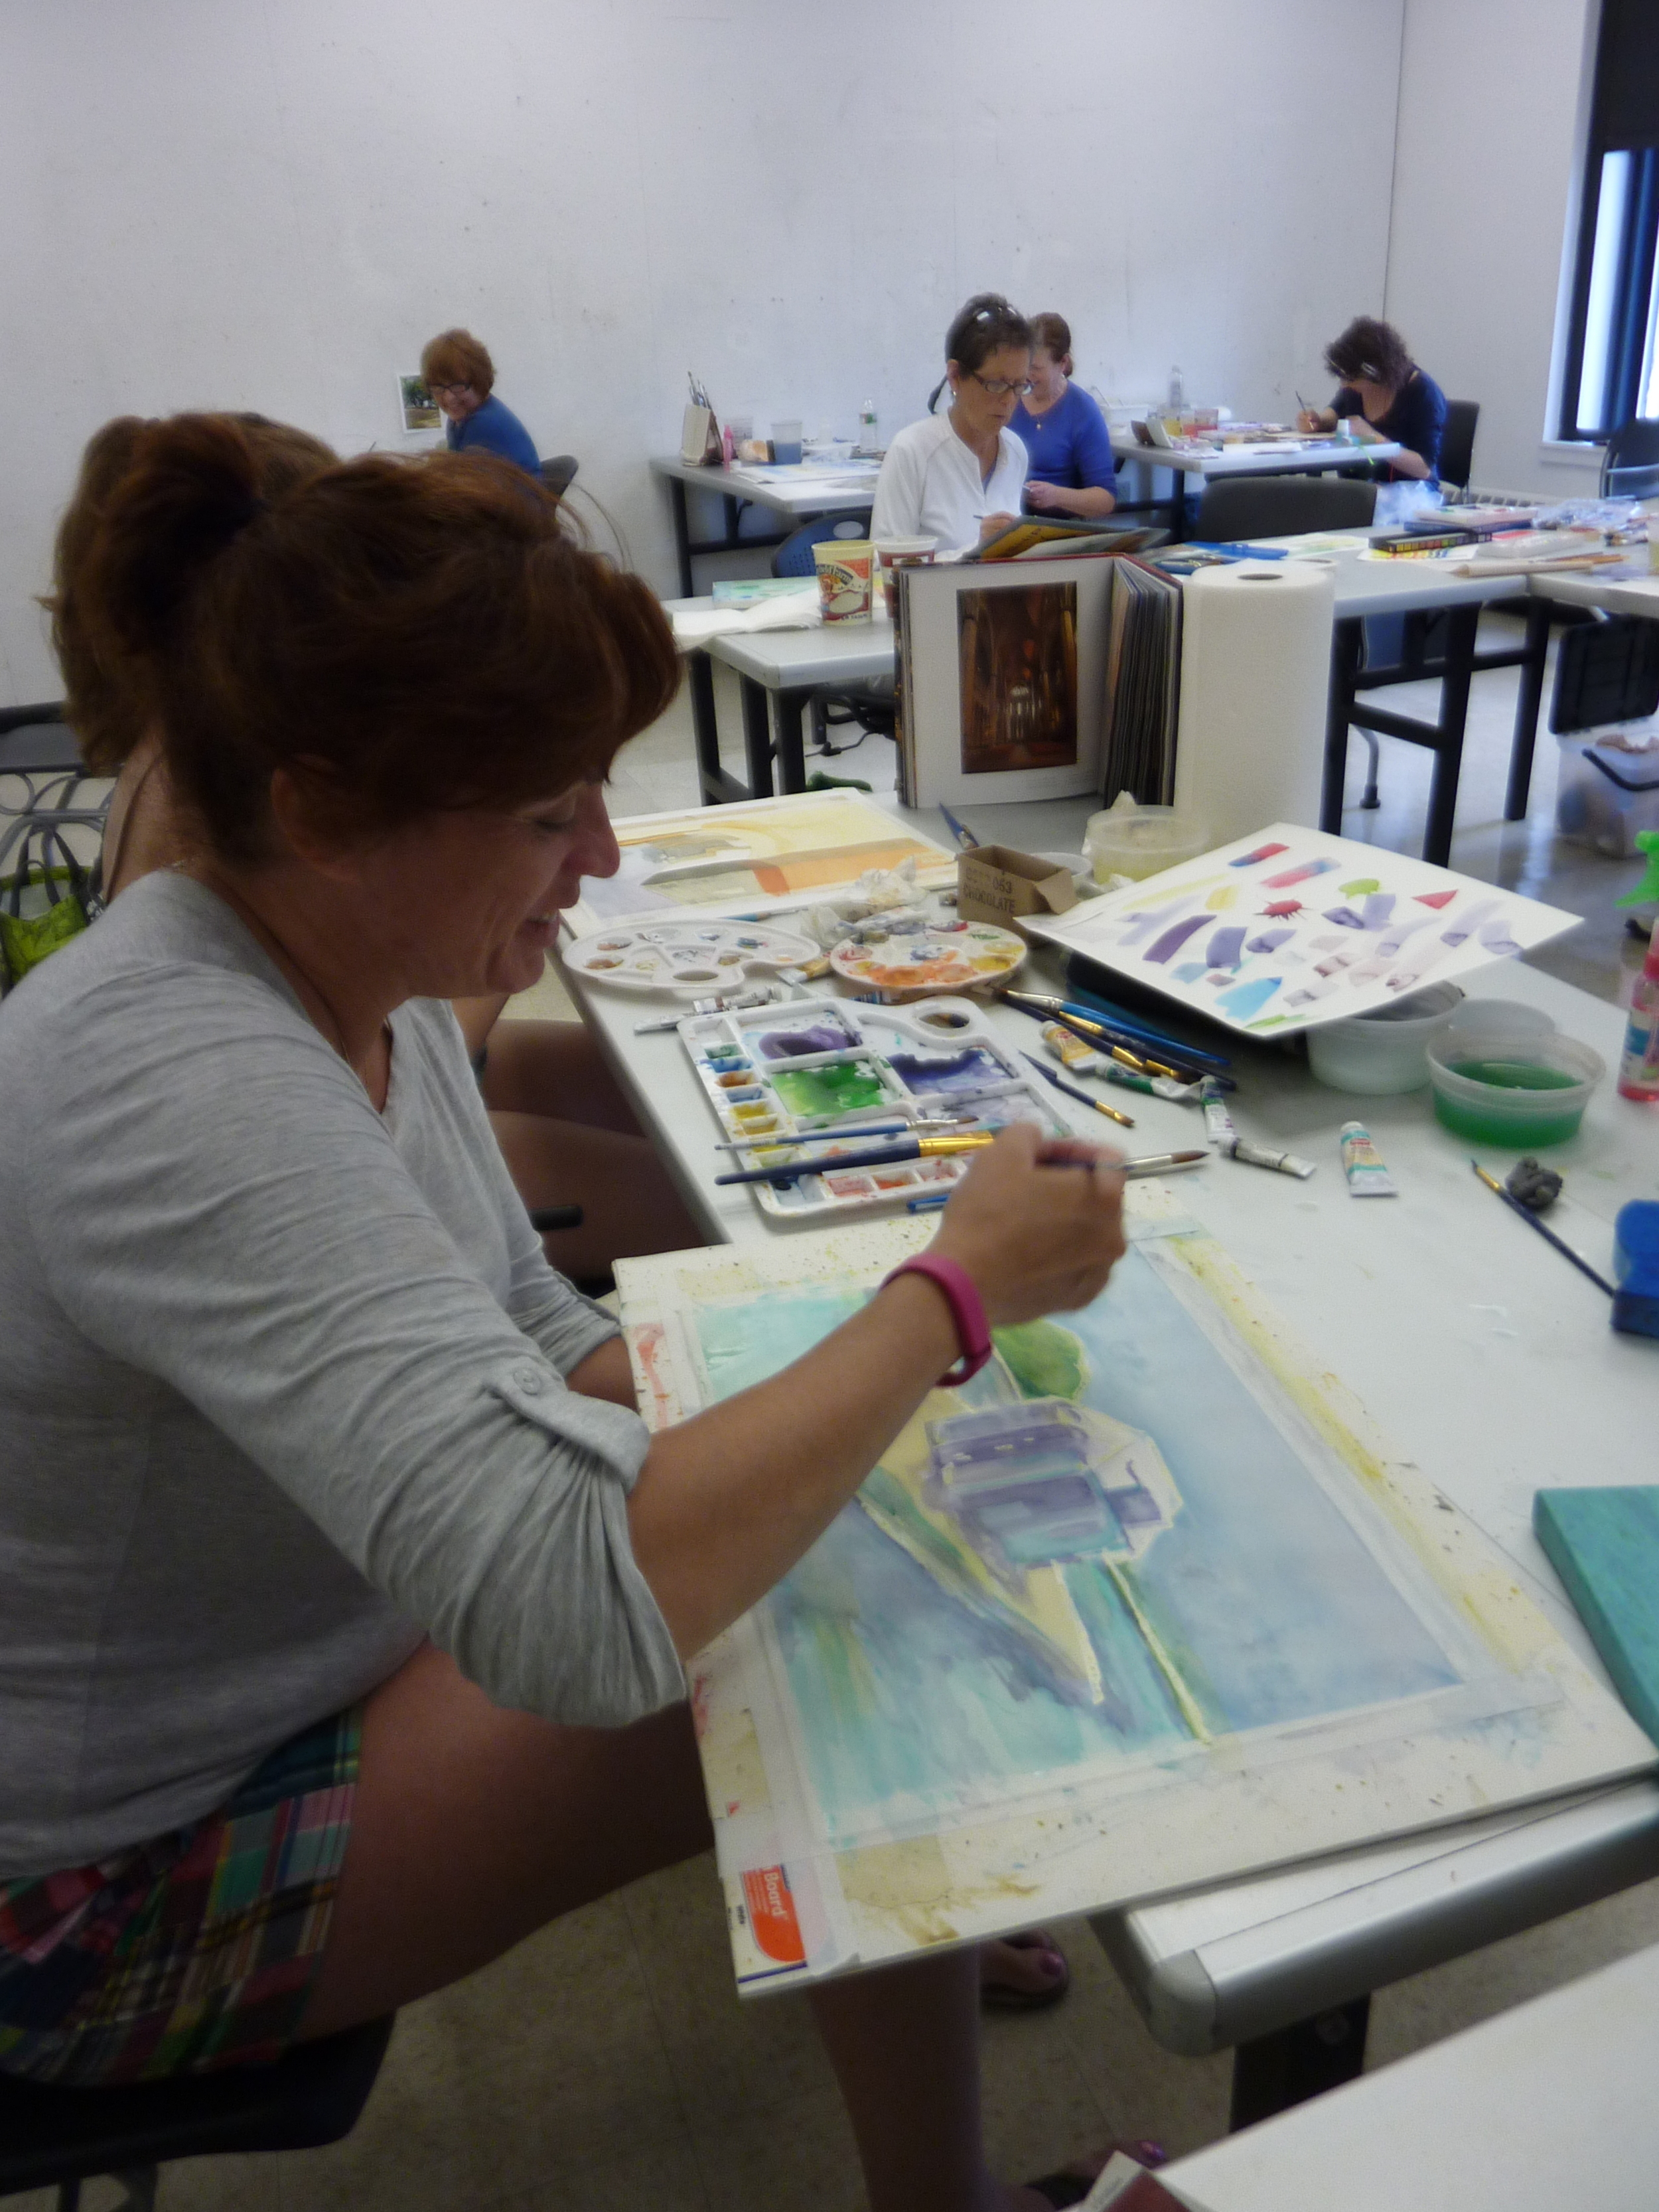 Trish came with her daughter, and worked on a Caribbean scene featuring cool blues and violets.